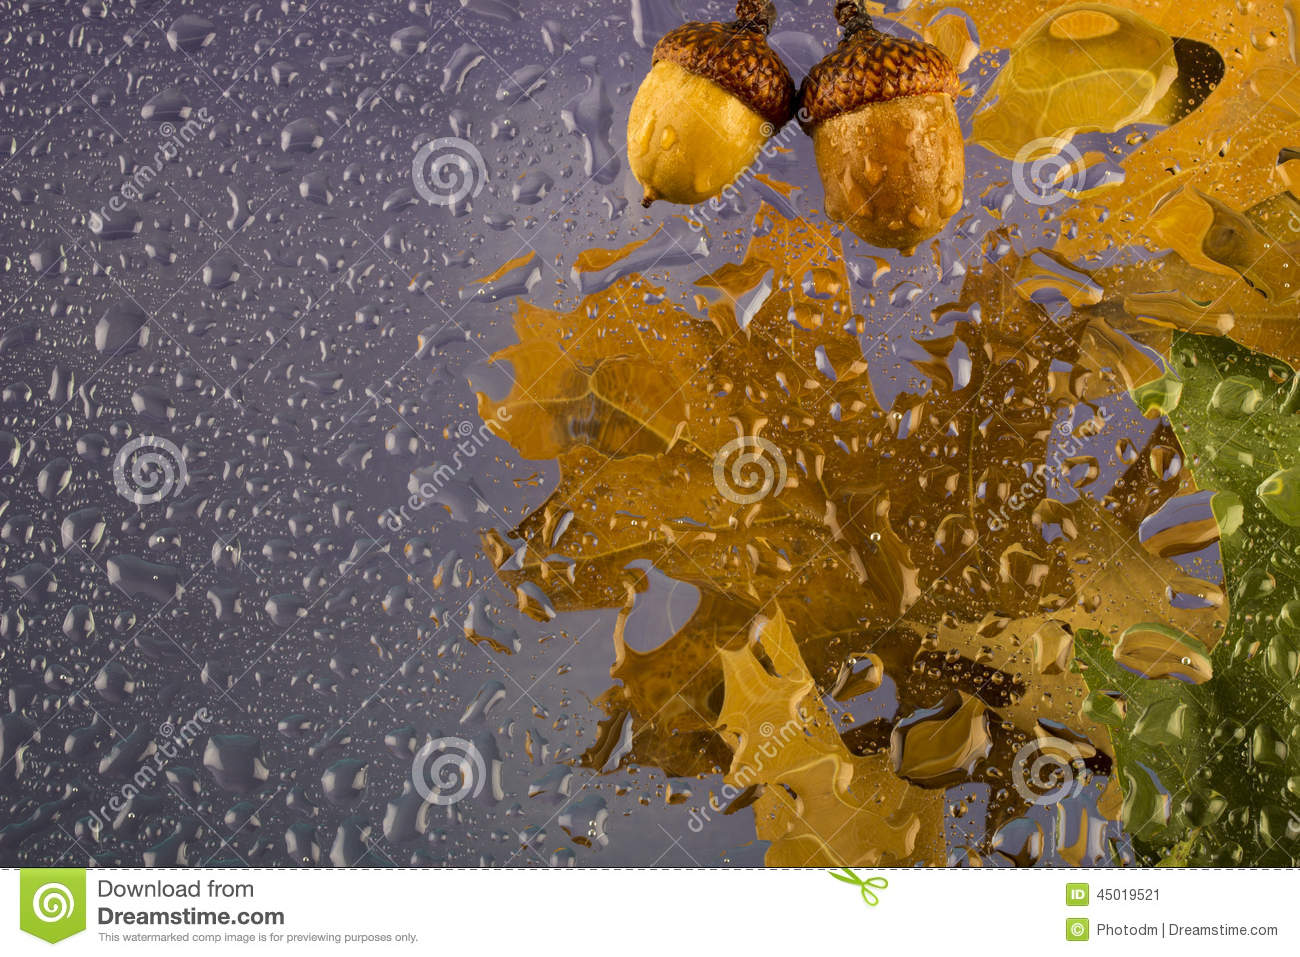 Autumn Rainy Cloudy Day With Dry Leaves And Acorns Drops